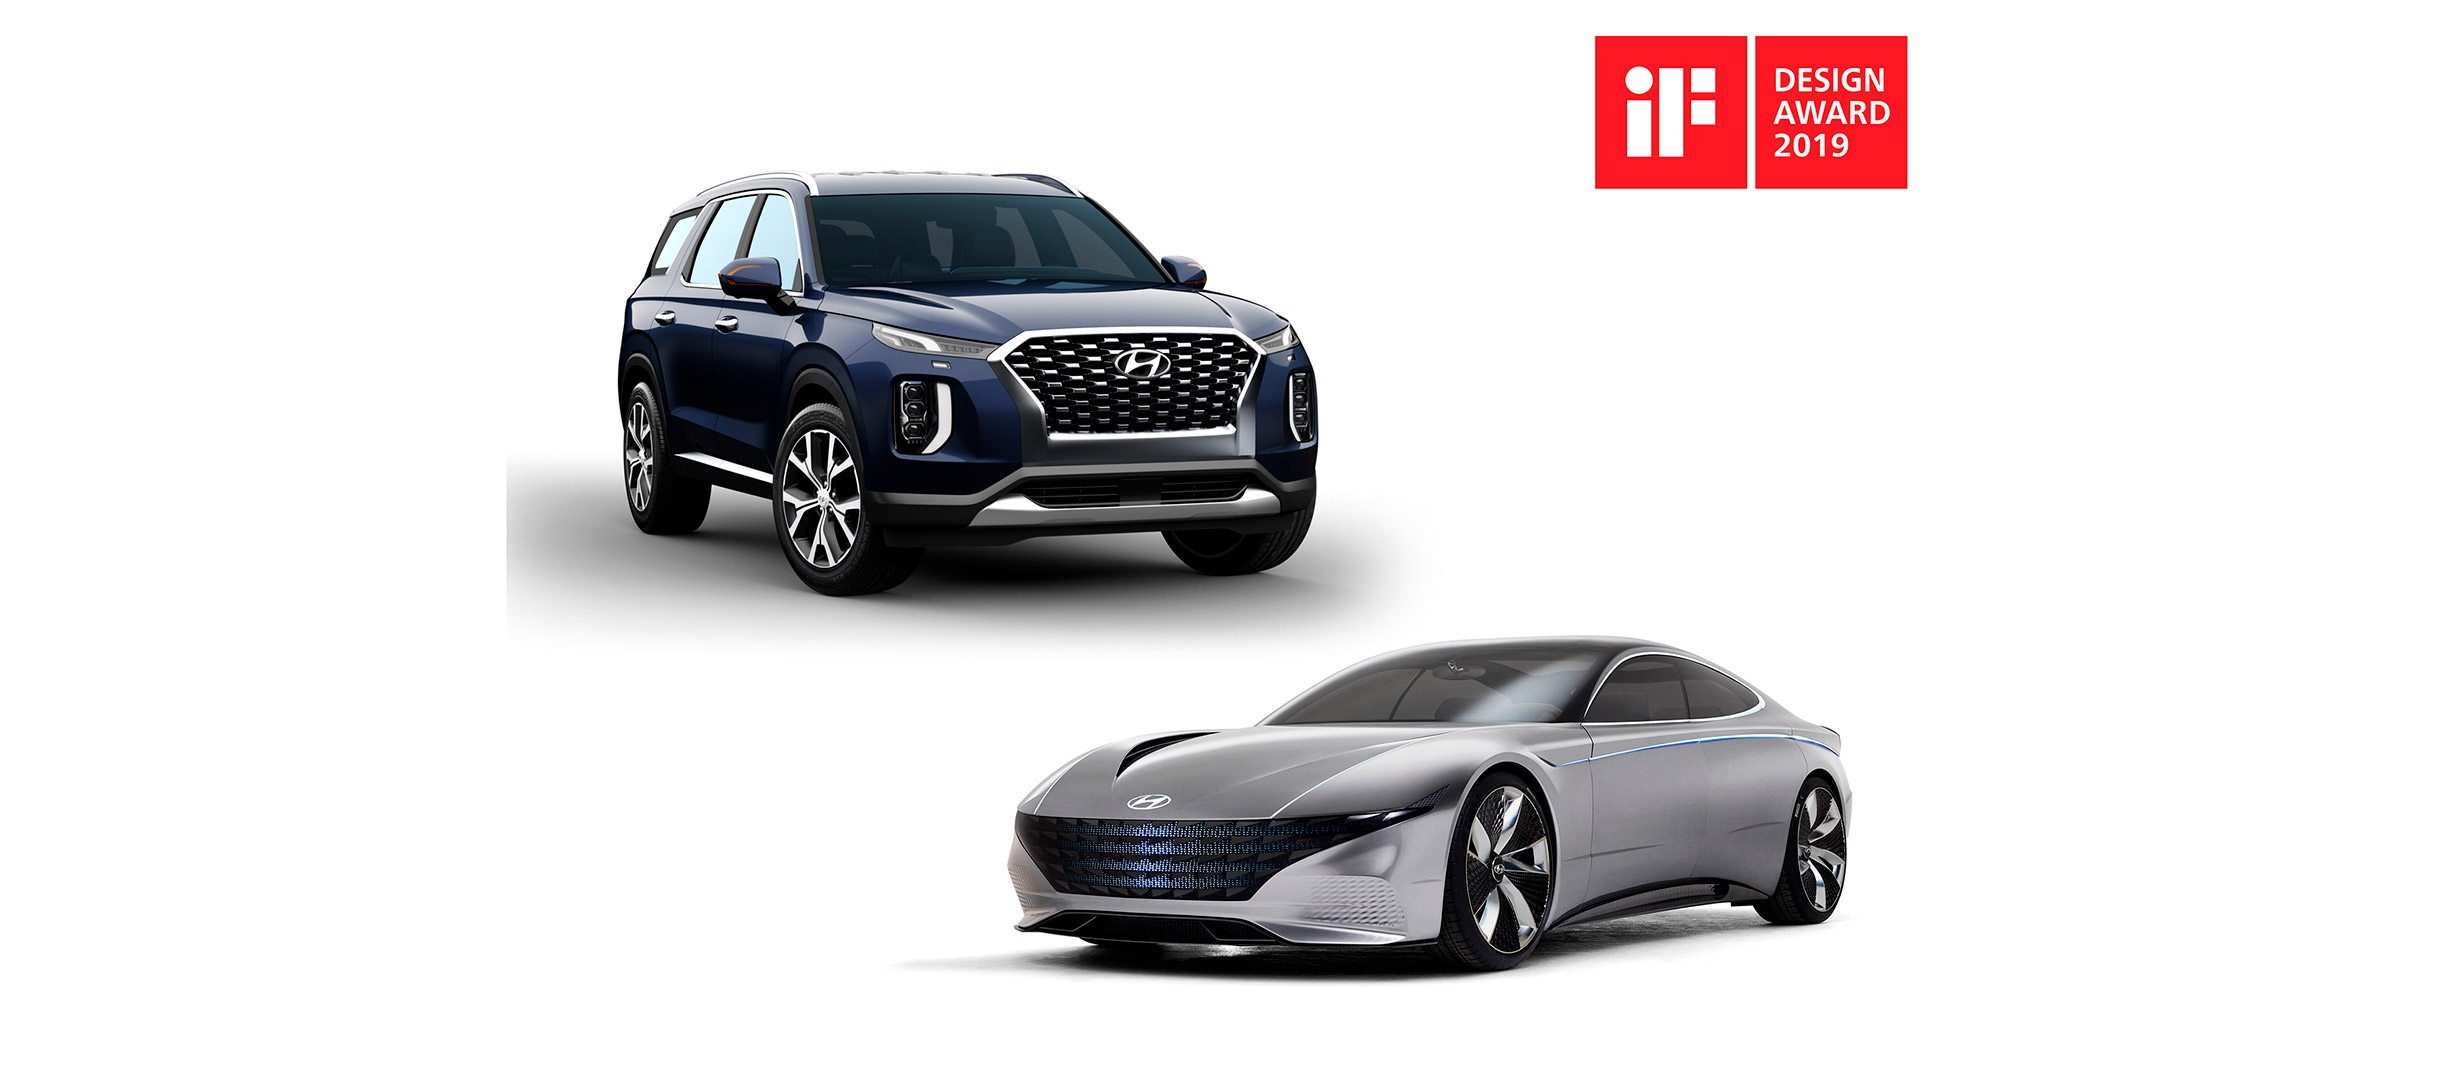 Hyundai gana dos premios iF Design Award 2019